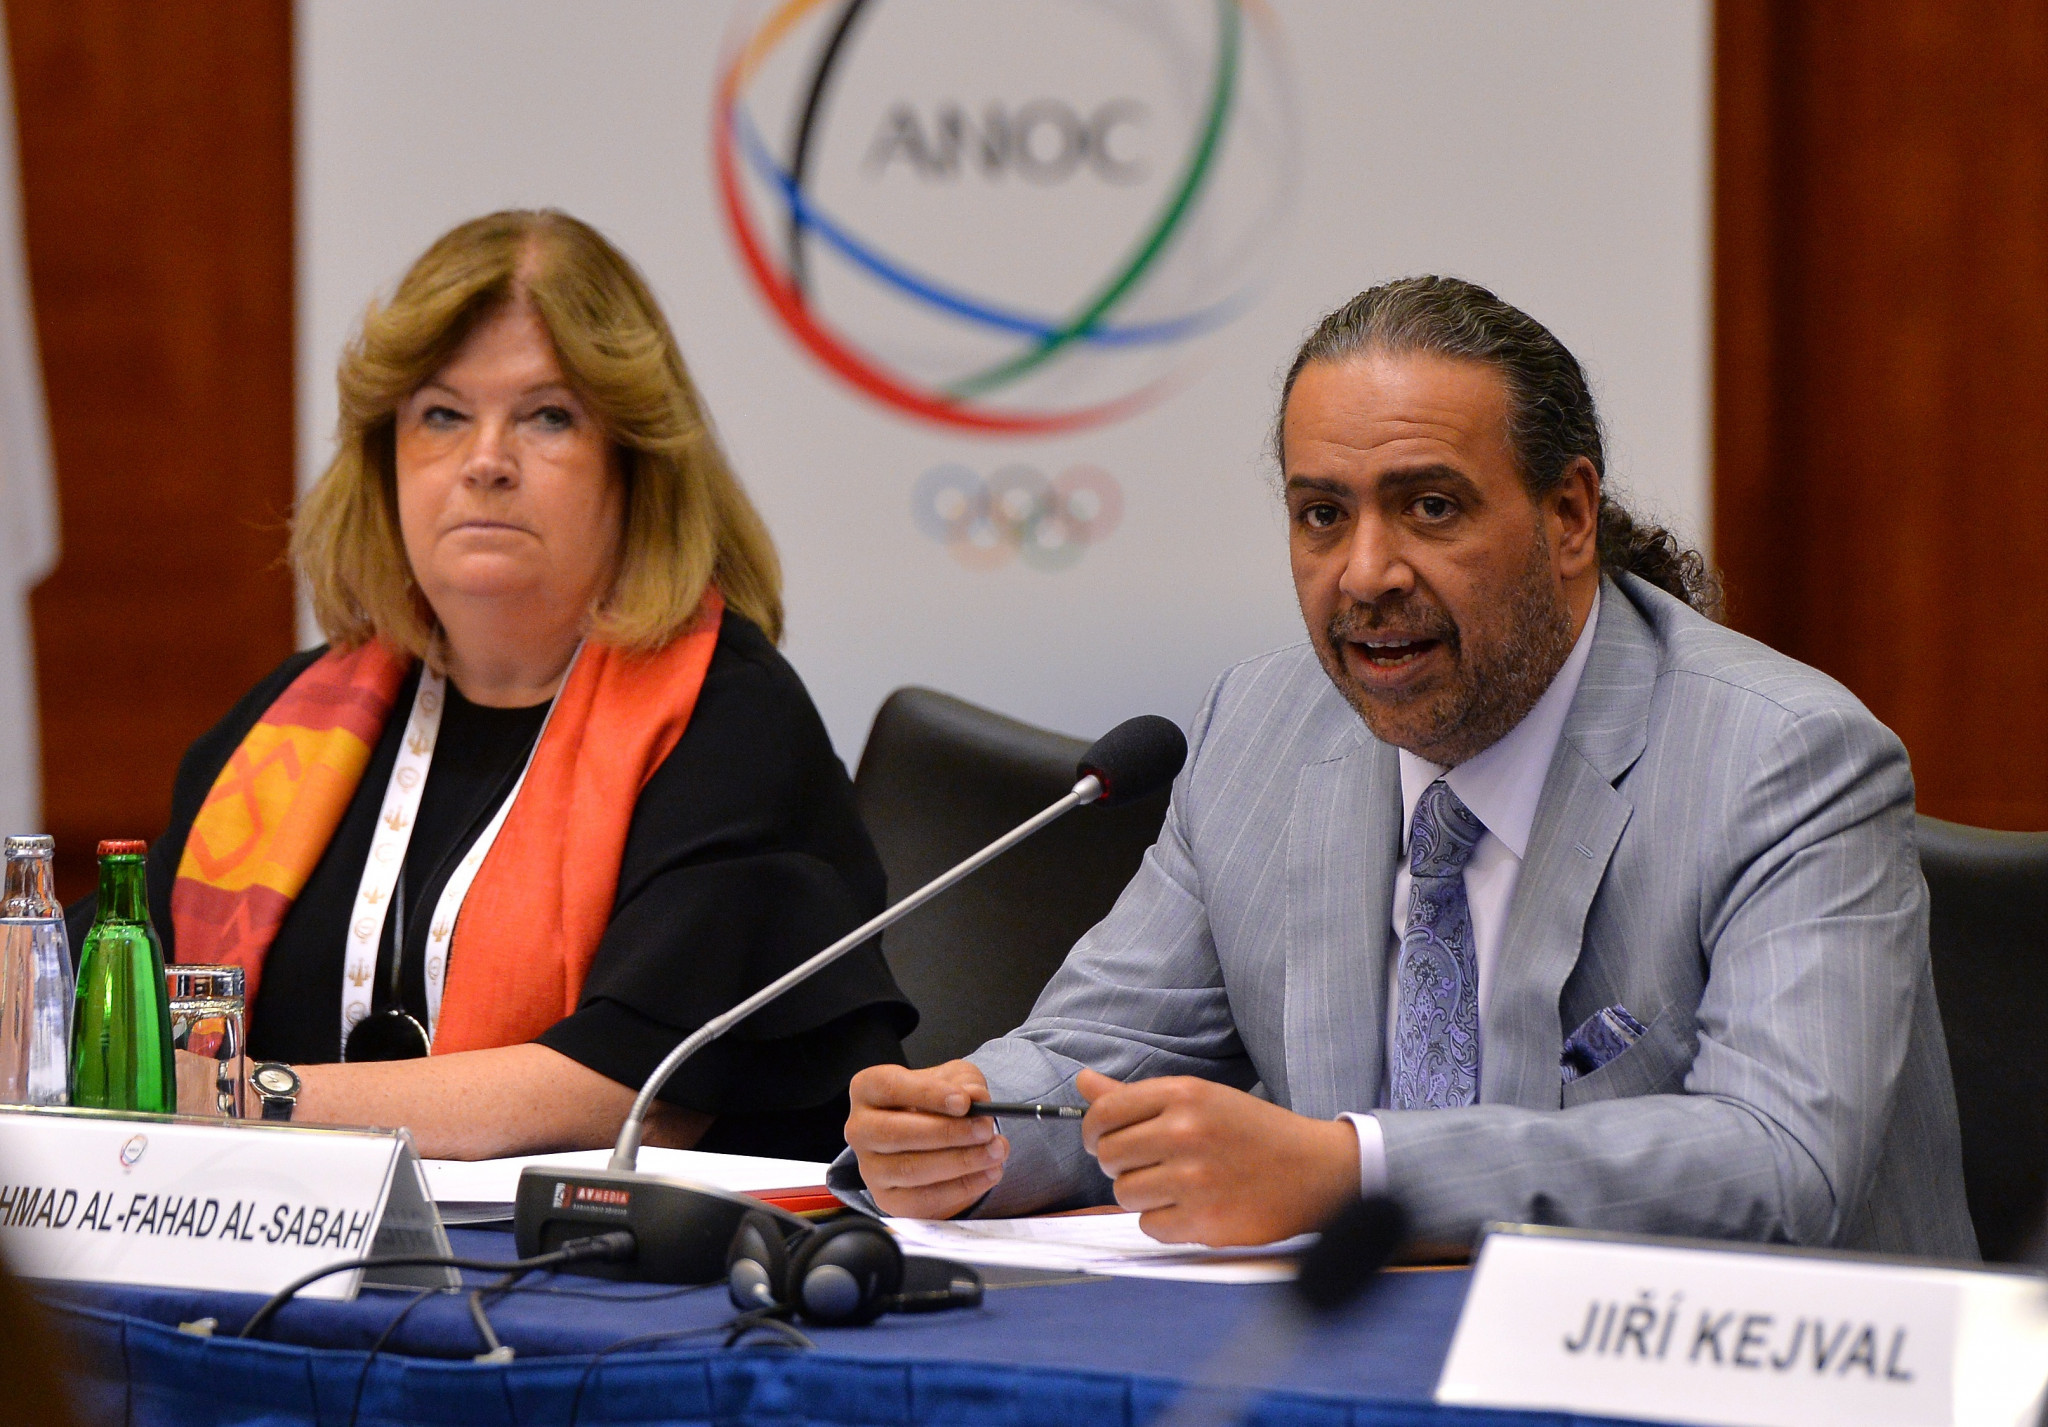 ANOC President Sheikh Ahmad Al-Fahad Al-Sabah, right, and secretary general Gunilla Lindberg pictured at today's meeting